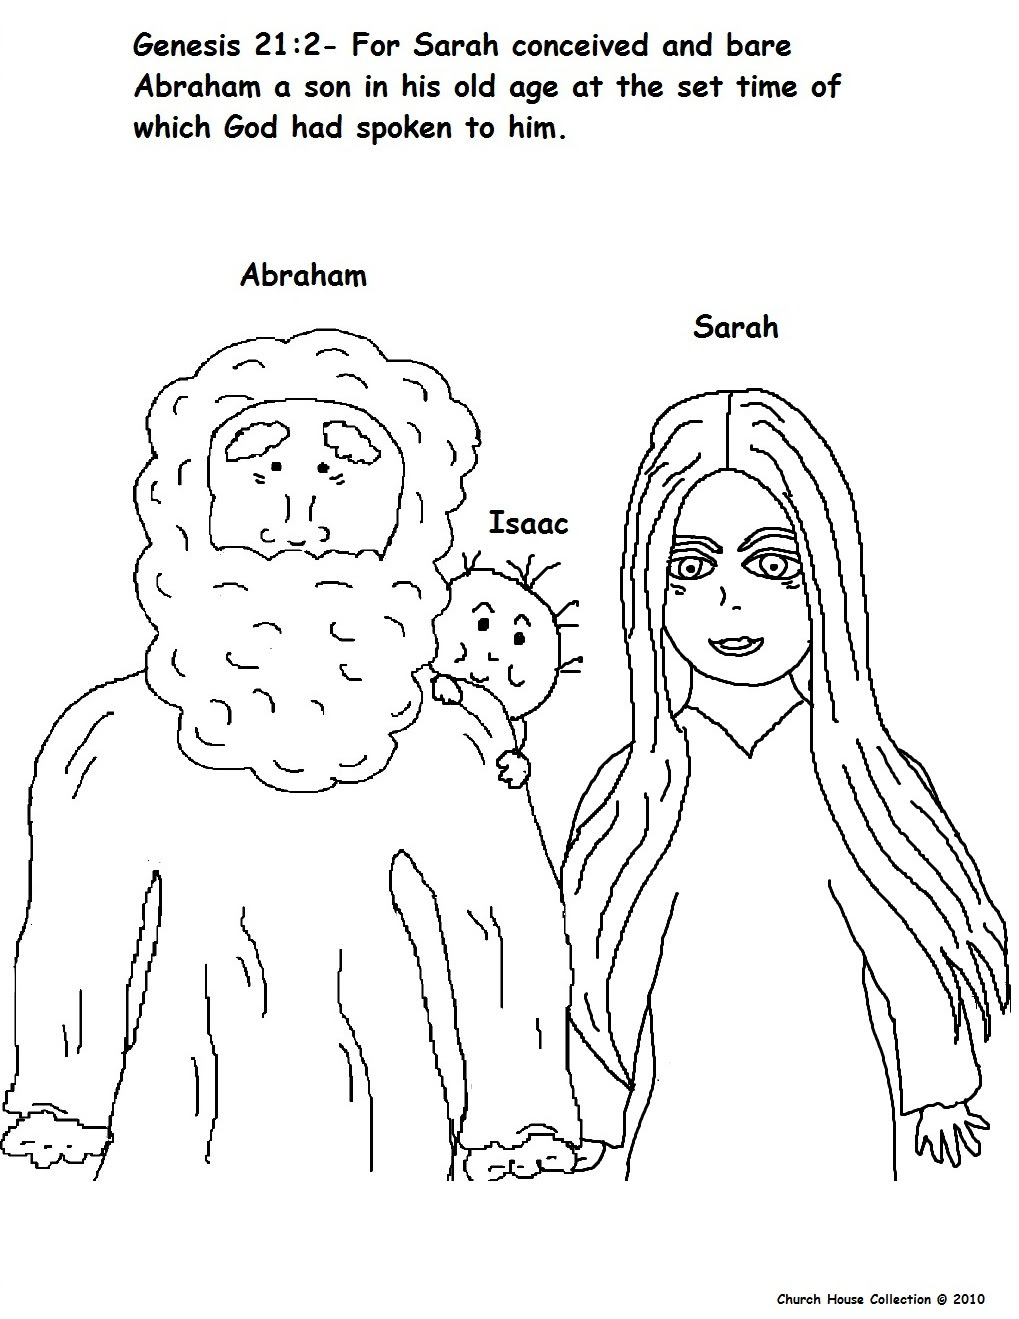 http://www.churchhousecollection.com/resources/abraham%20and%20Sarah%20and%20Issac%20coloring%20page.jpg